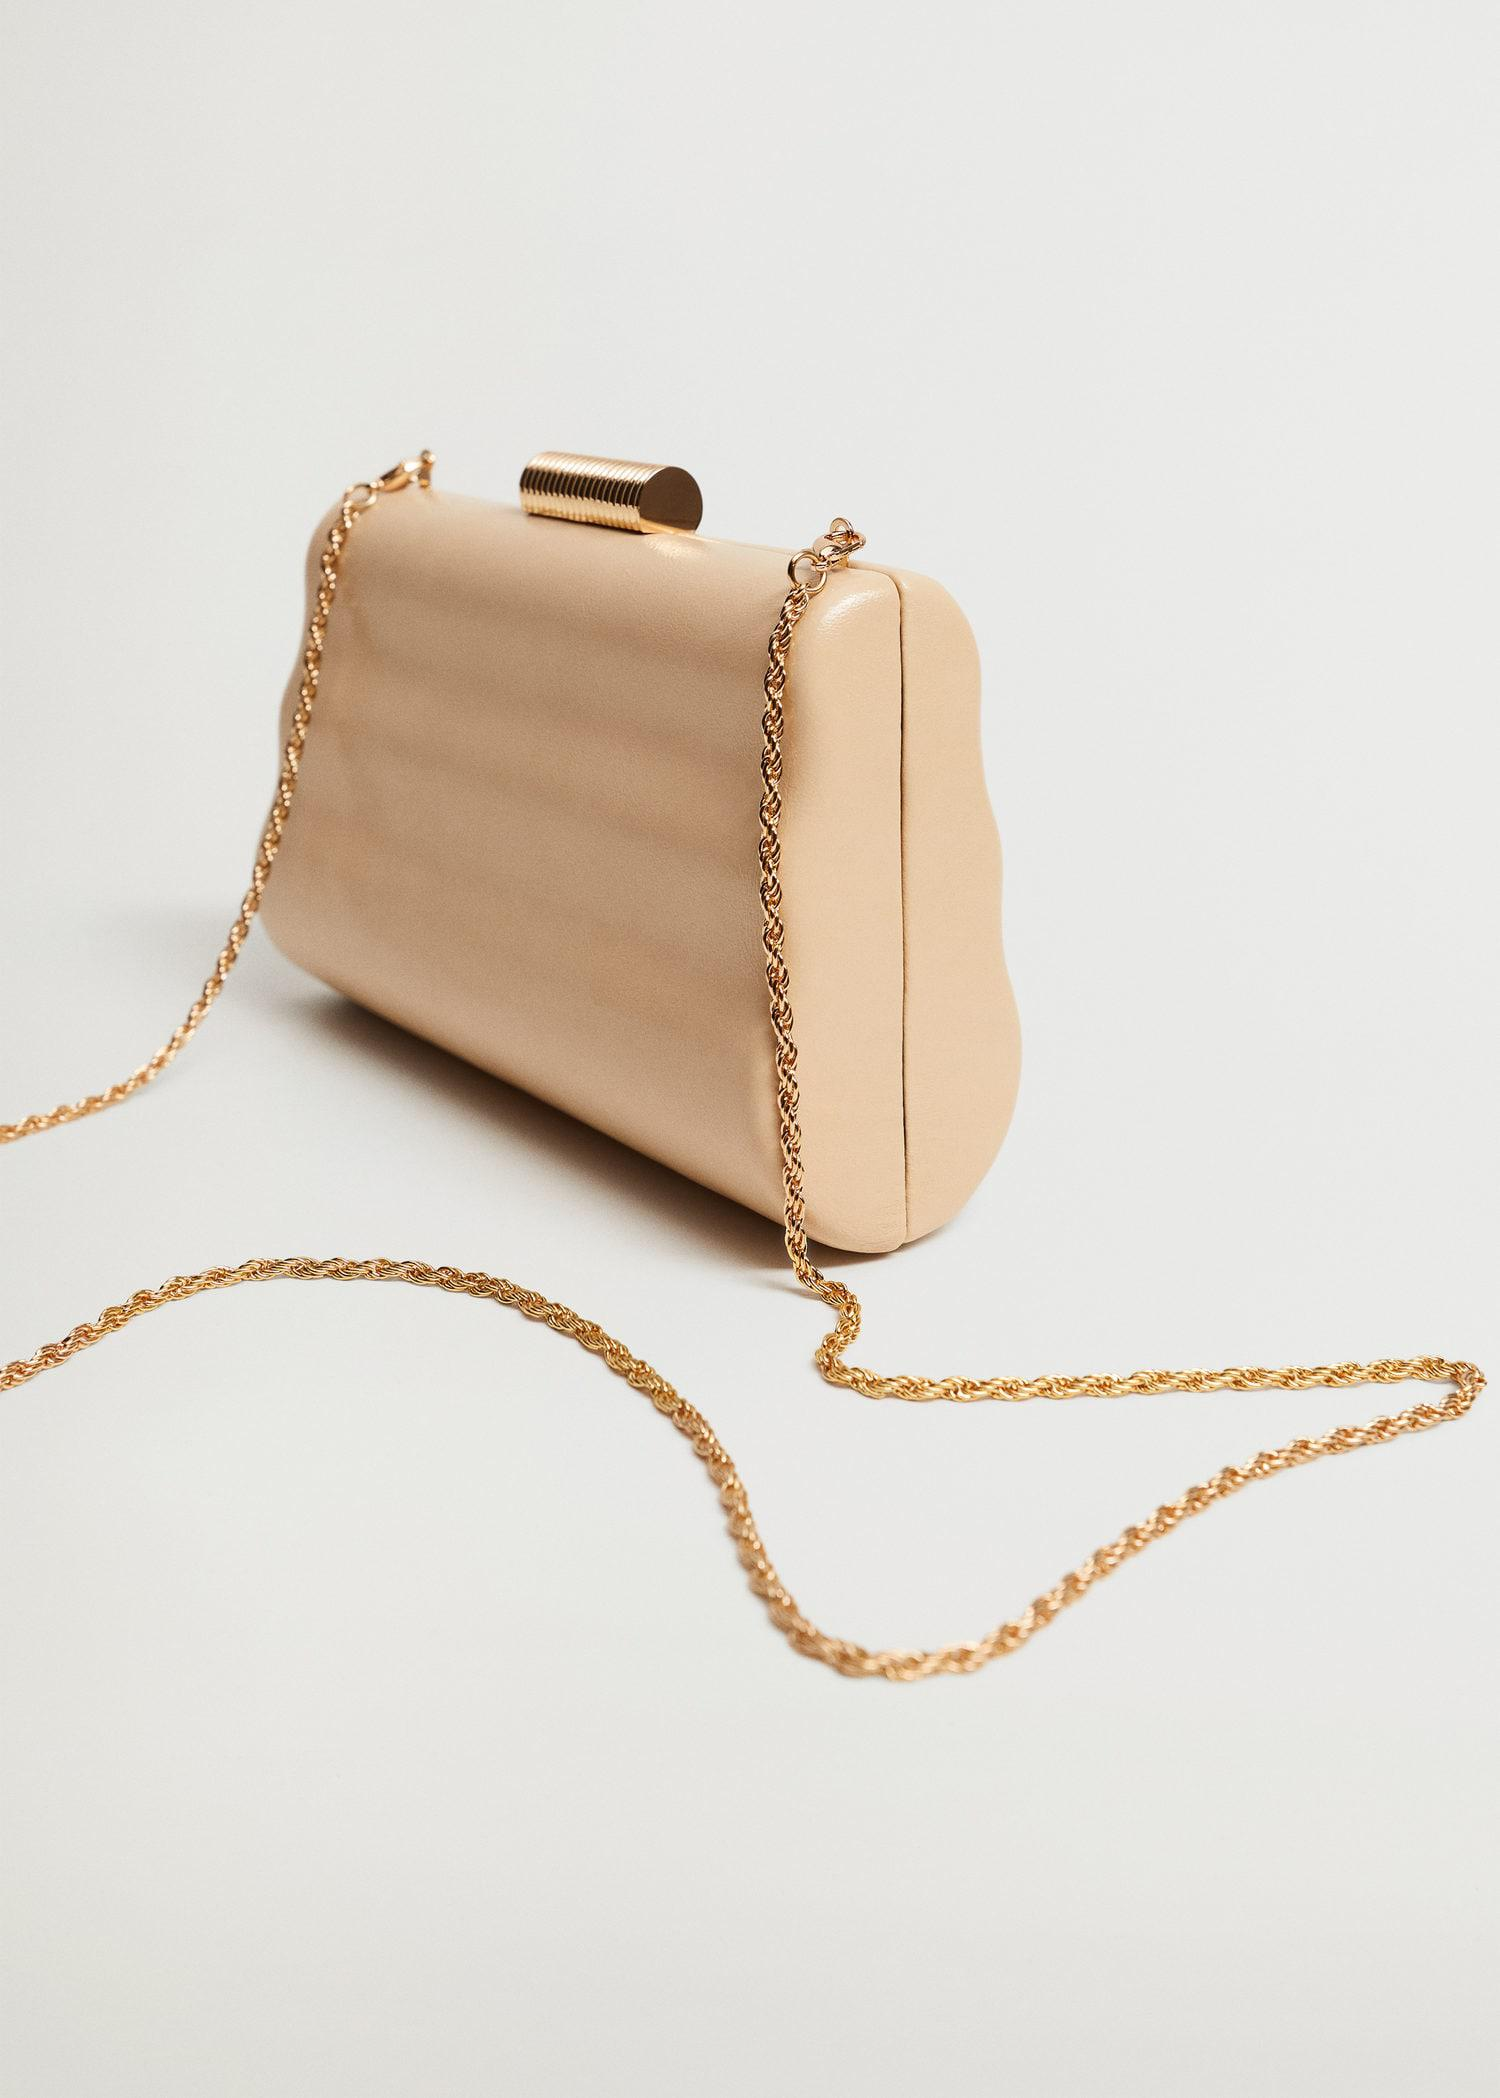 Box clutch with chain 1